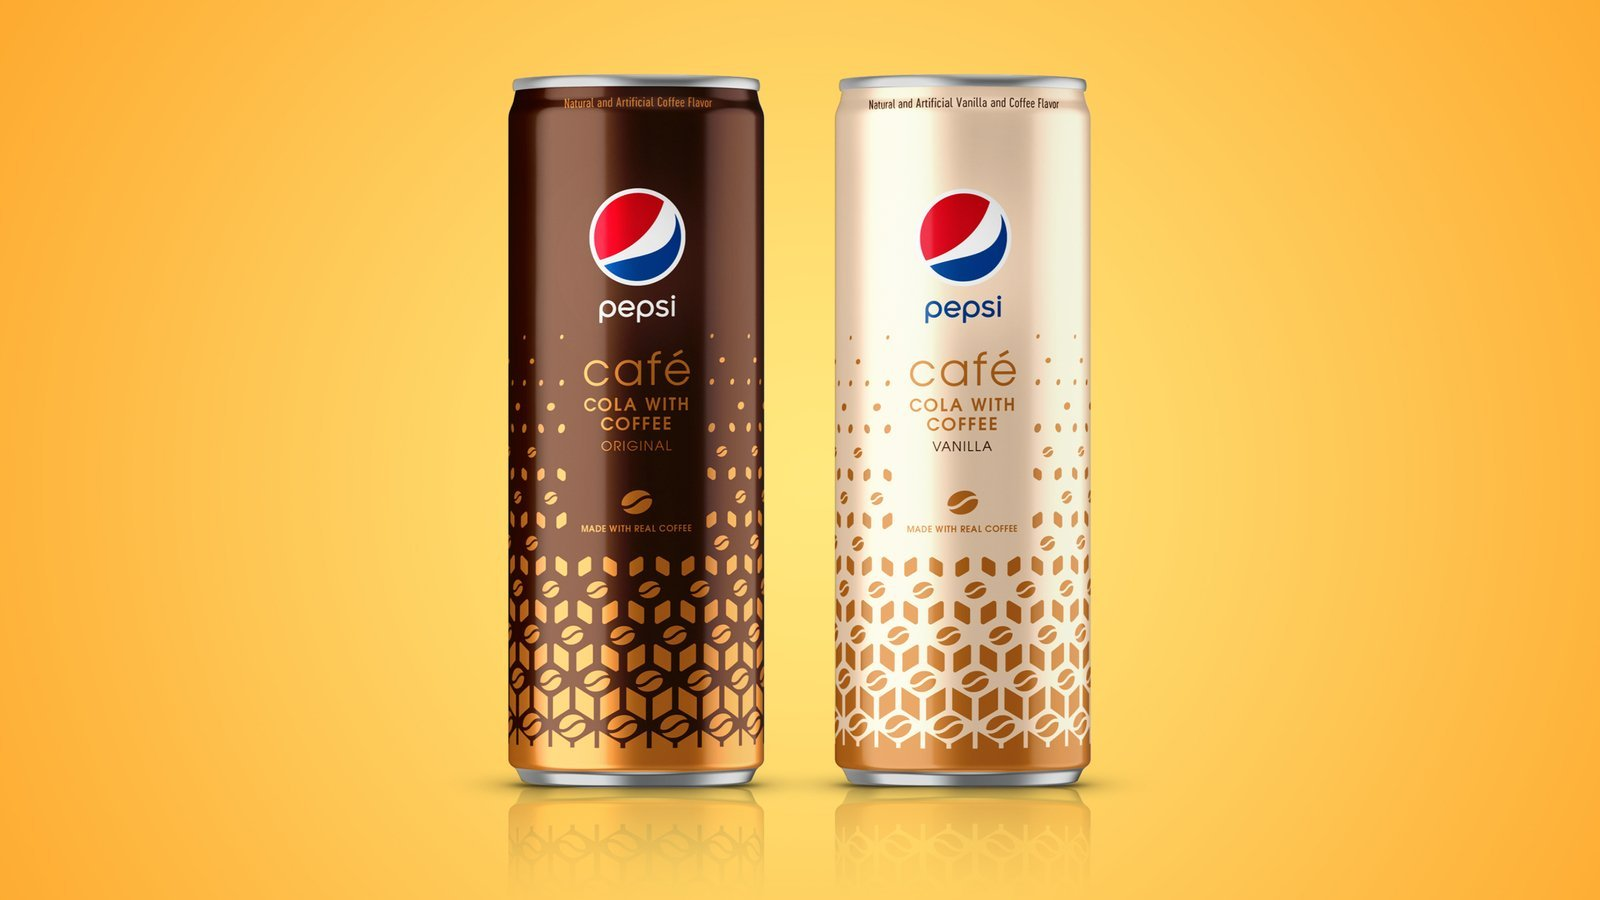 Pepsi's new product has nearly twice as much caffeine as its regular soda